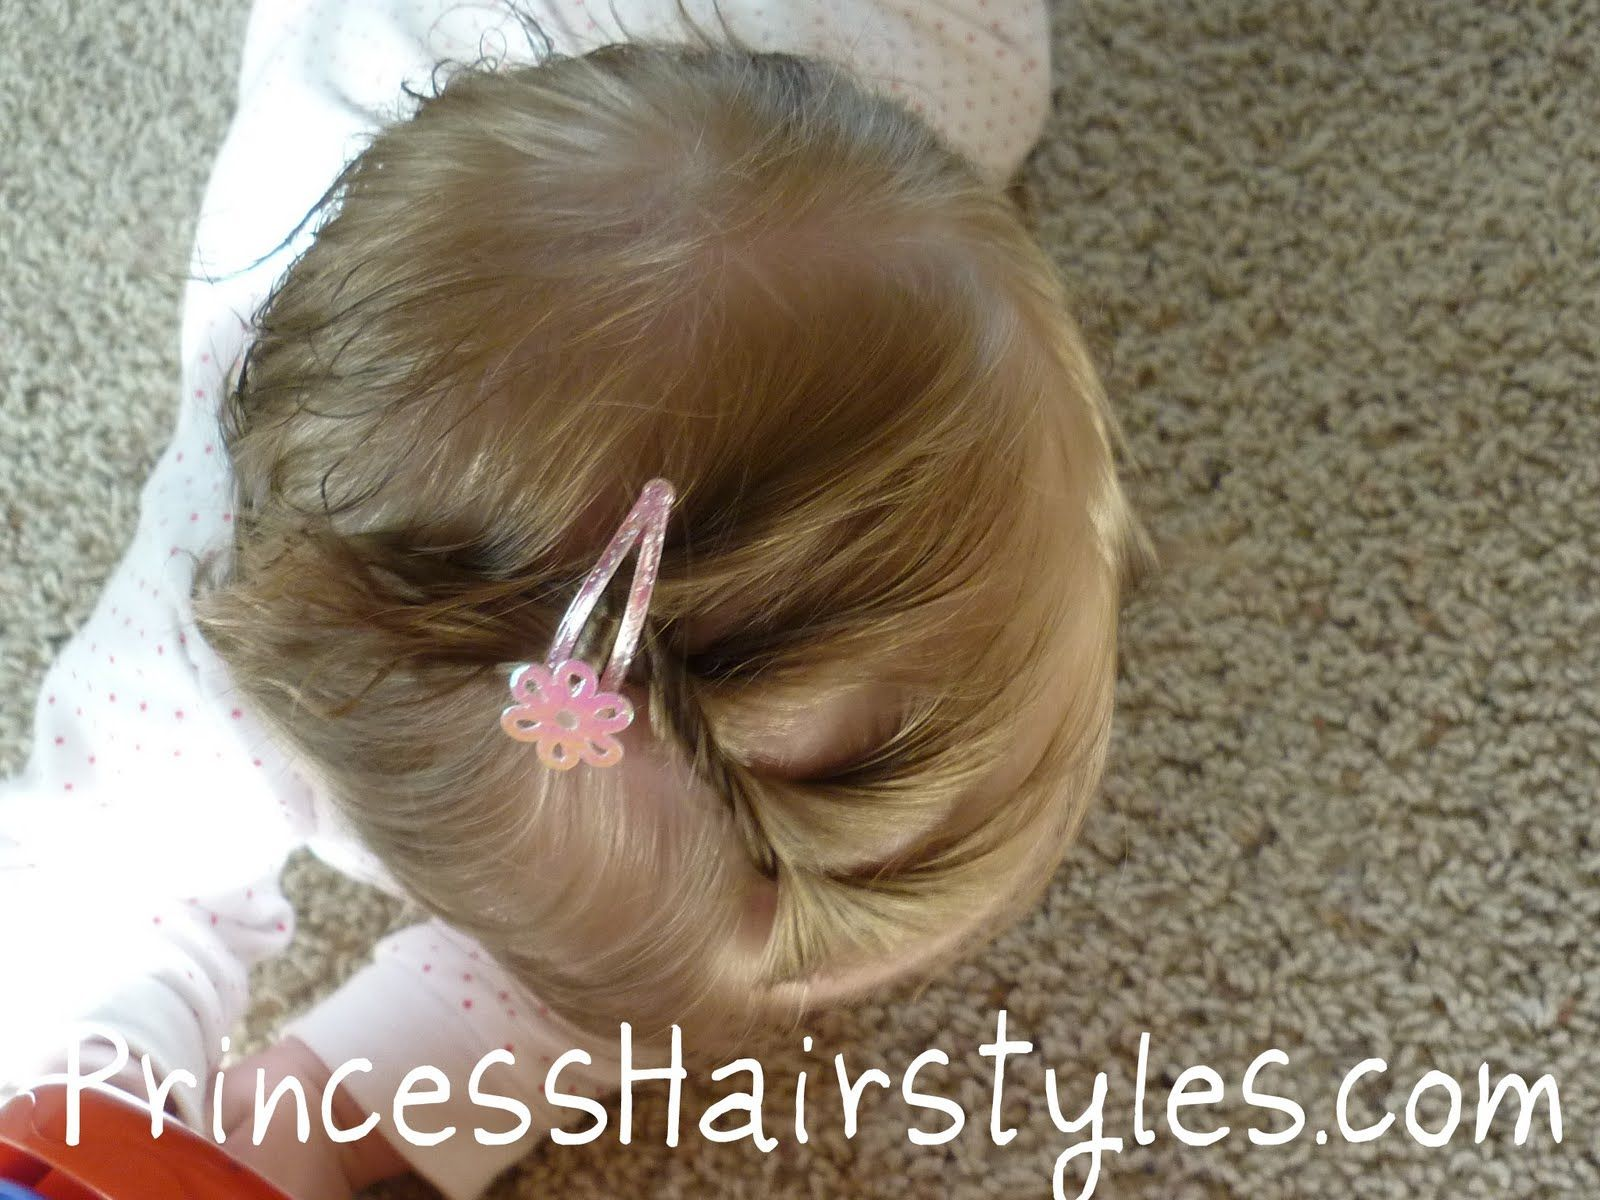 Baby hairstyles tiny twists hairstyles for baby girl pinterest